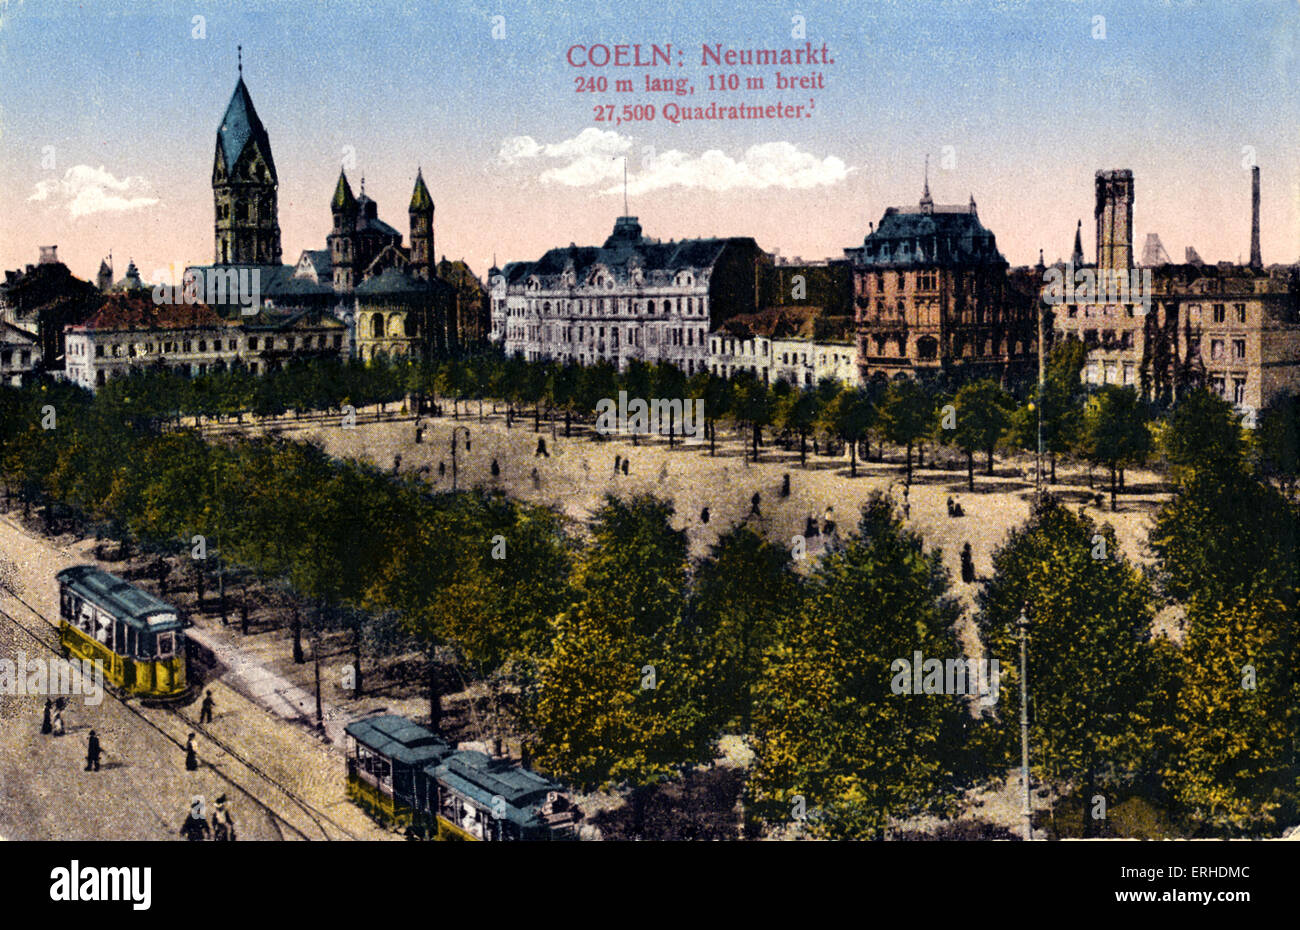 Cologne market place (Neumarkt) Turn of the 20th century view of street with trams and tram lines, trees, townhouses. - Stock Image